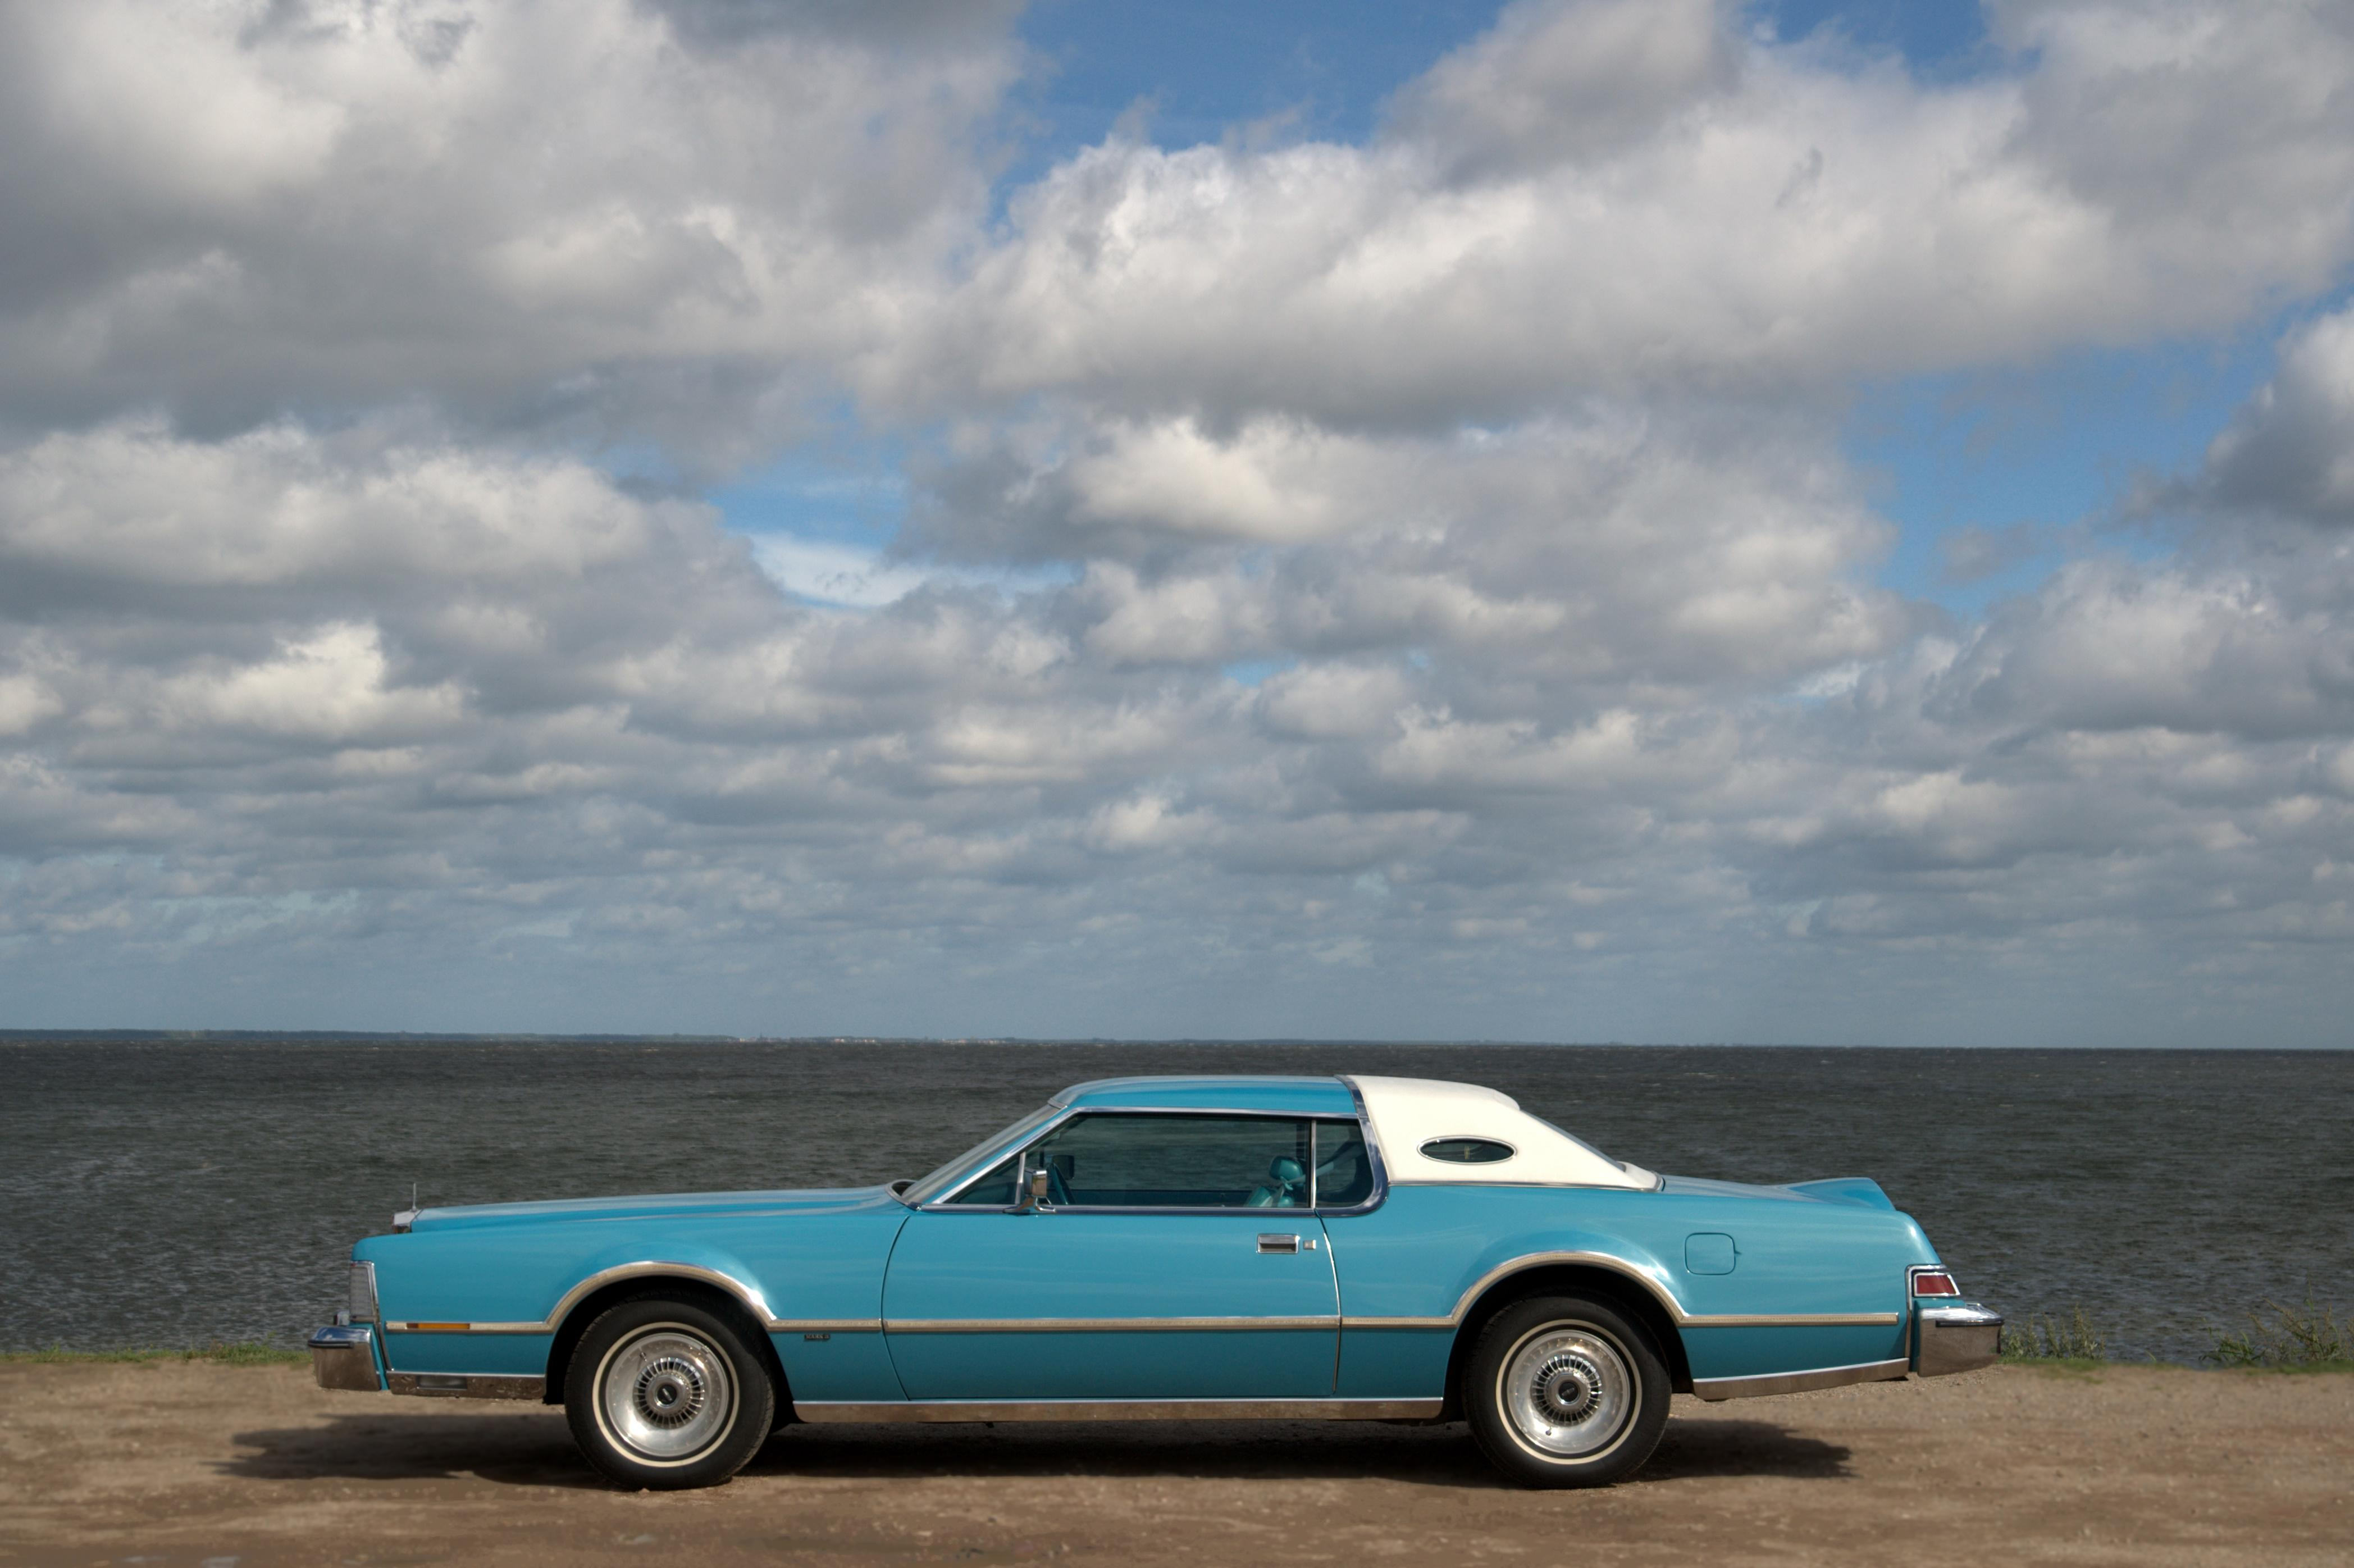 lincoln_givenchy's 1976 Lincoln Mark IV